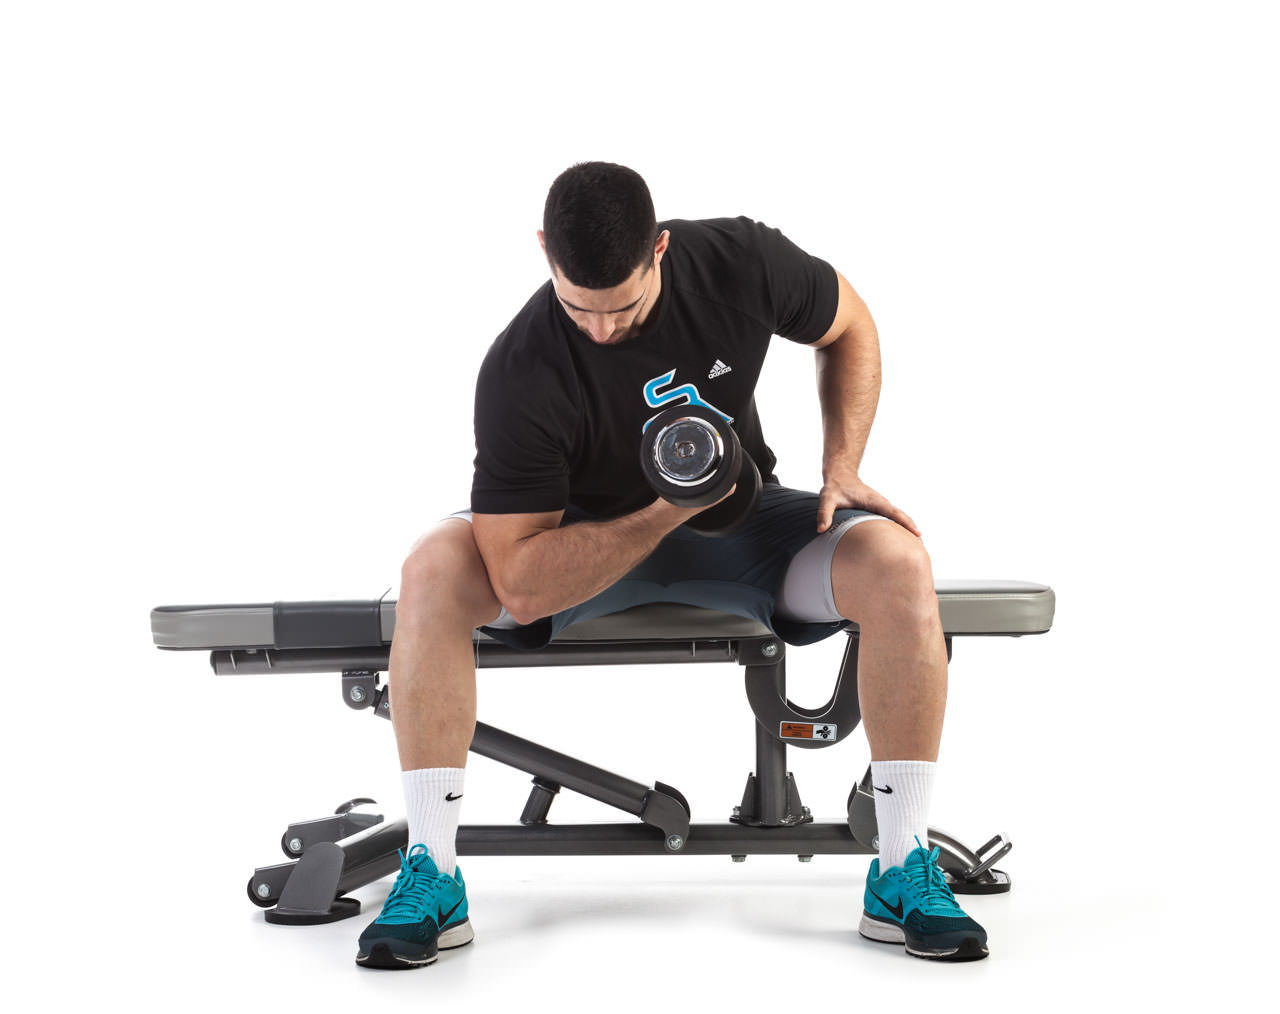 Seated Dumbbell Concentration Curl frame #2